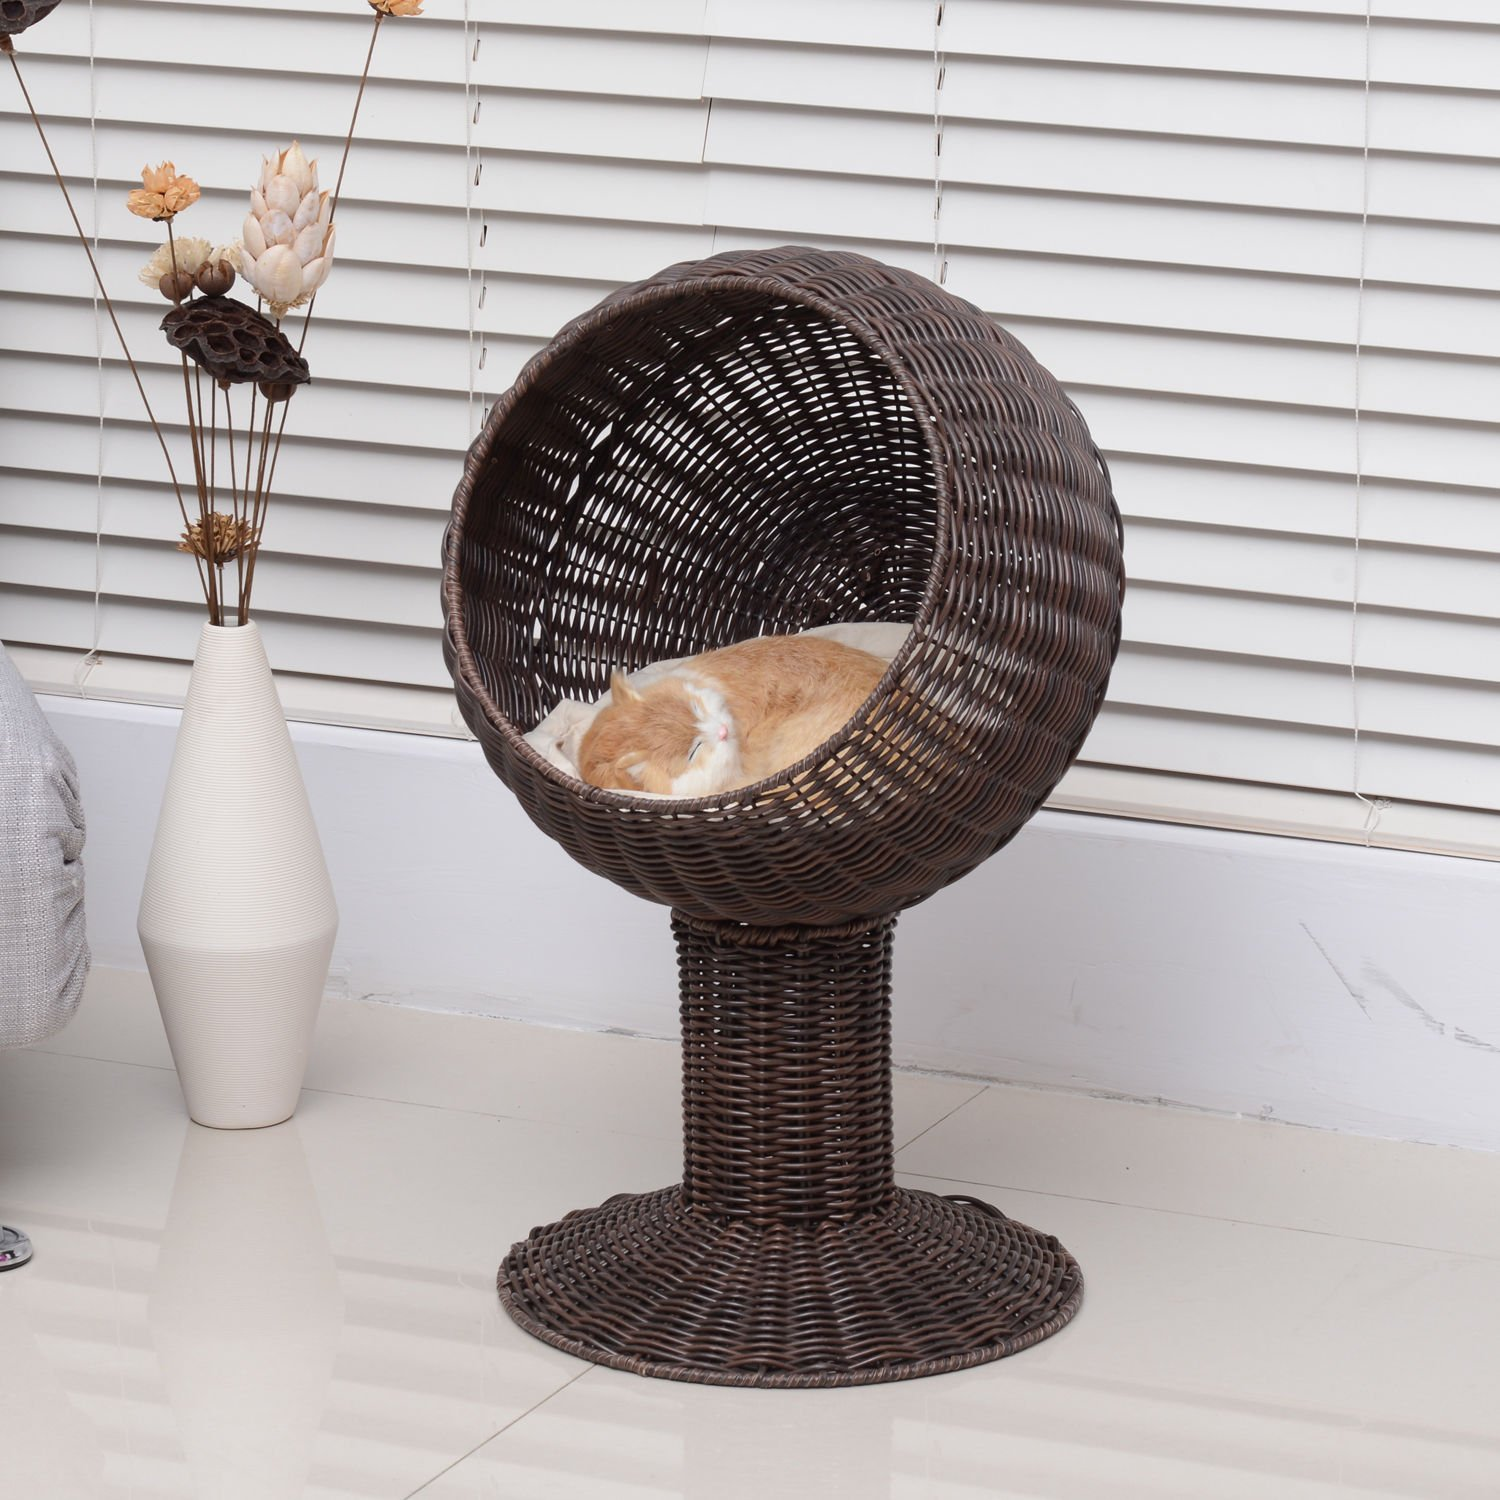 Generic cker Elevate Elevated Pet r Elev Bed Cat at Cave Co Hooded Cushion Scratch House ve Condo Hooded C 28'' Rattan Wicker hion Scrat Cave Condo